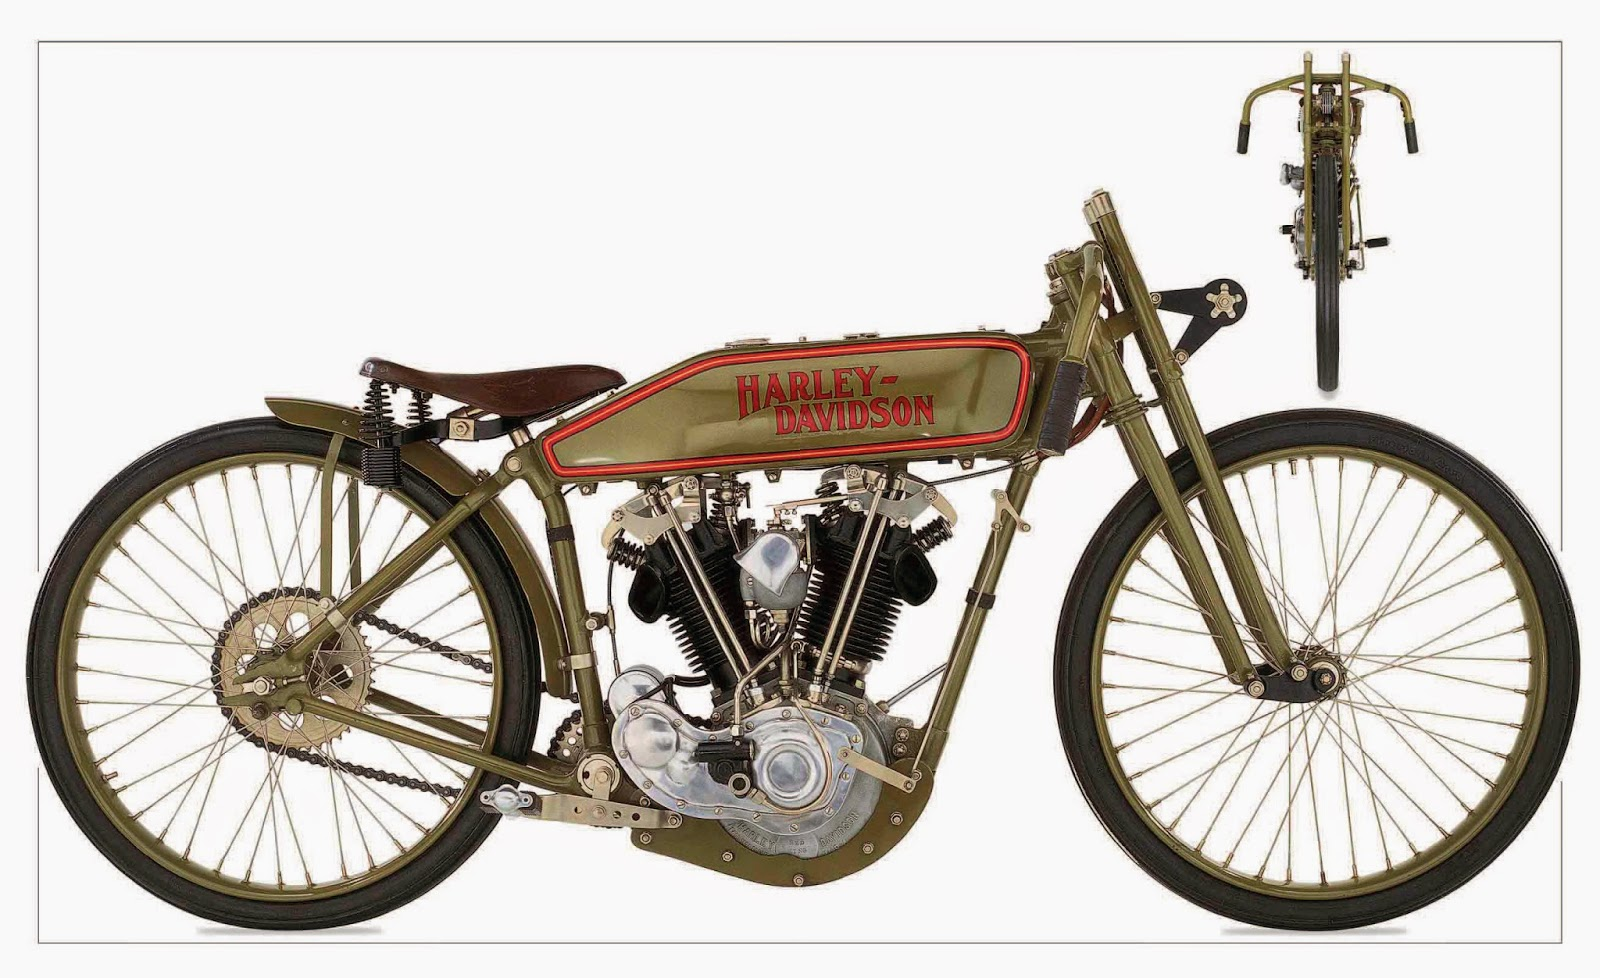 Harley Davidson 1920 Eight-Valve Racer